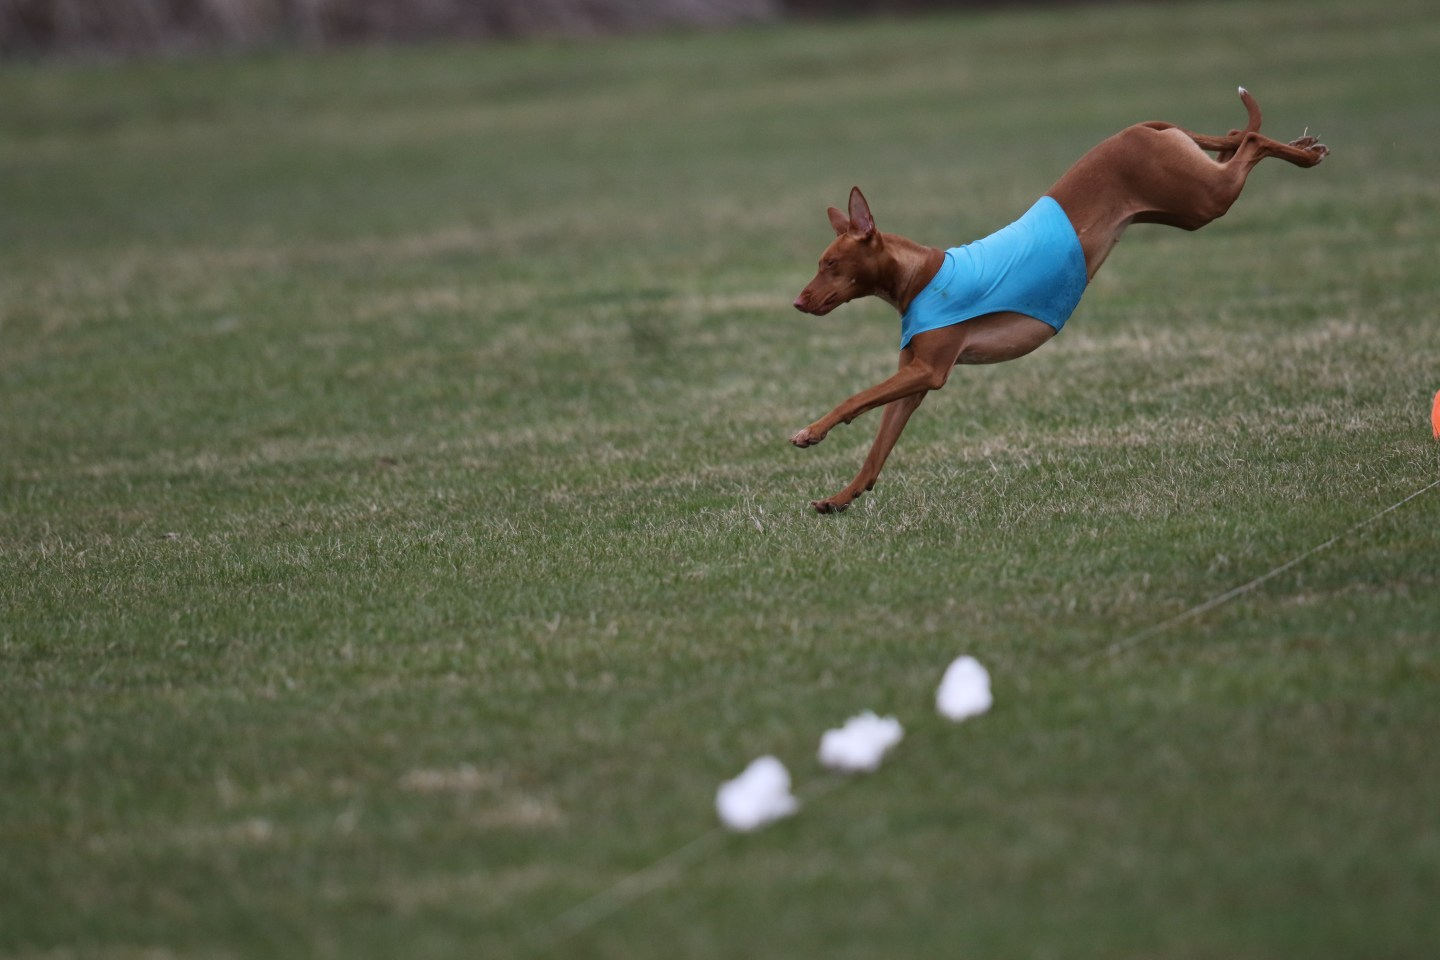 A pharaoh hound in a blue shirt is chasing a lure in a field.